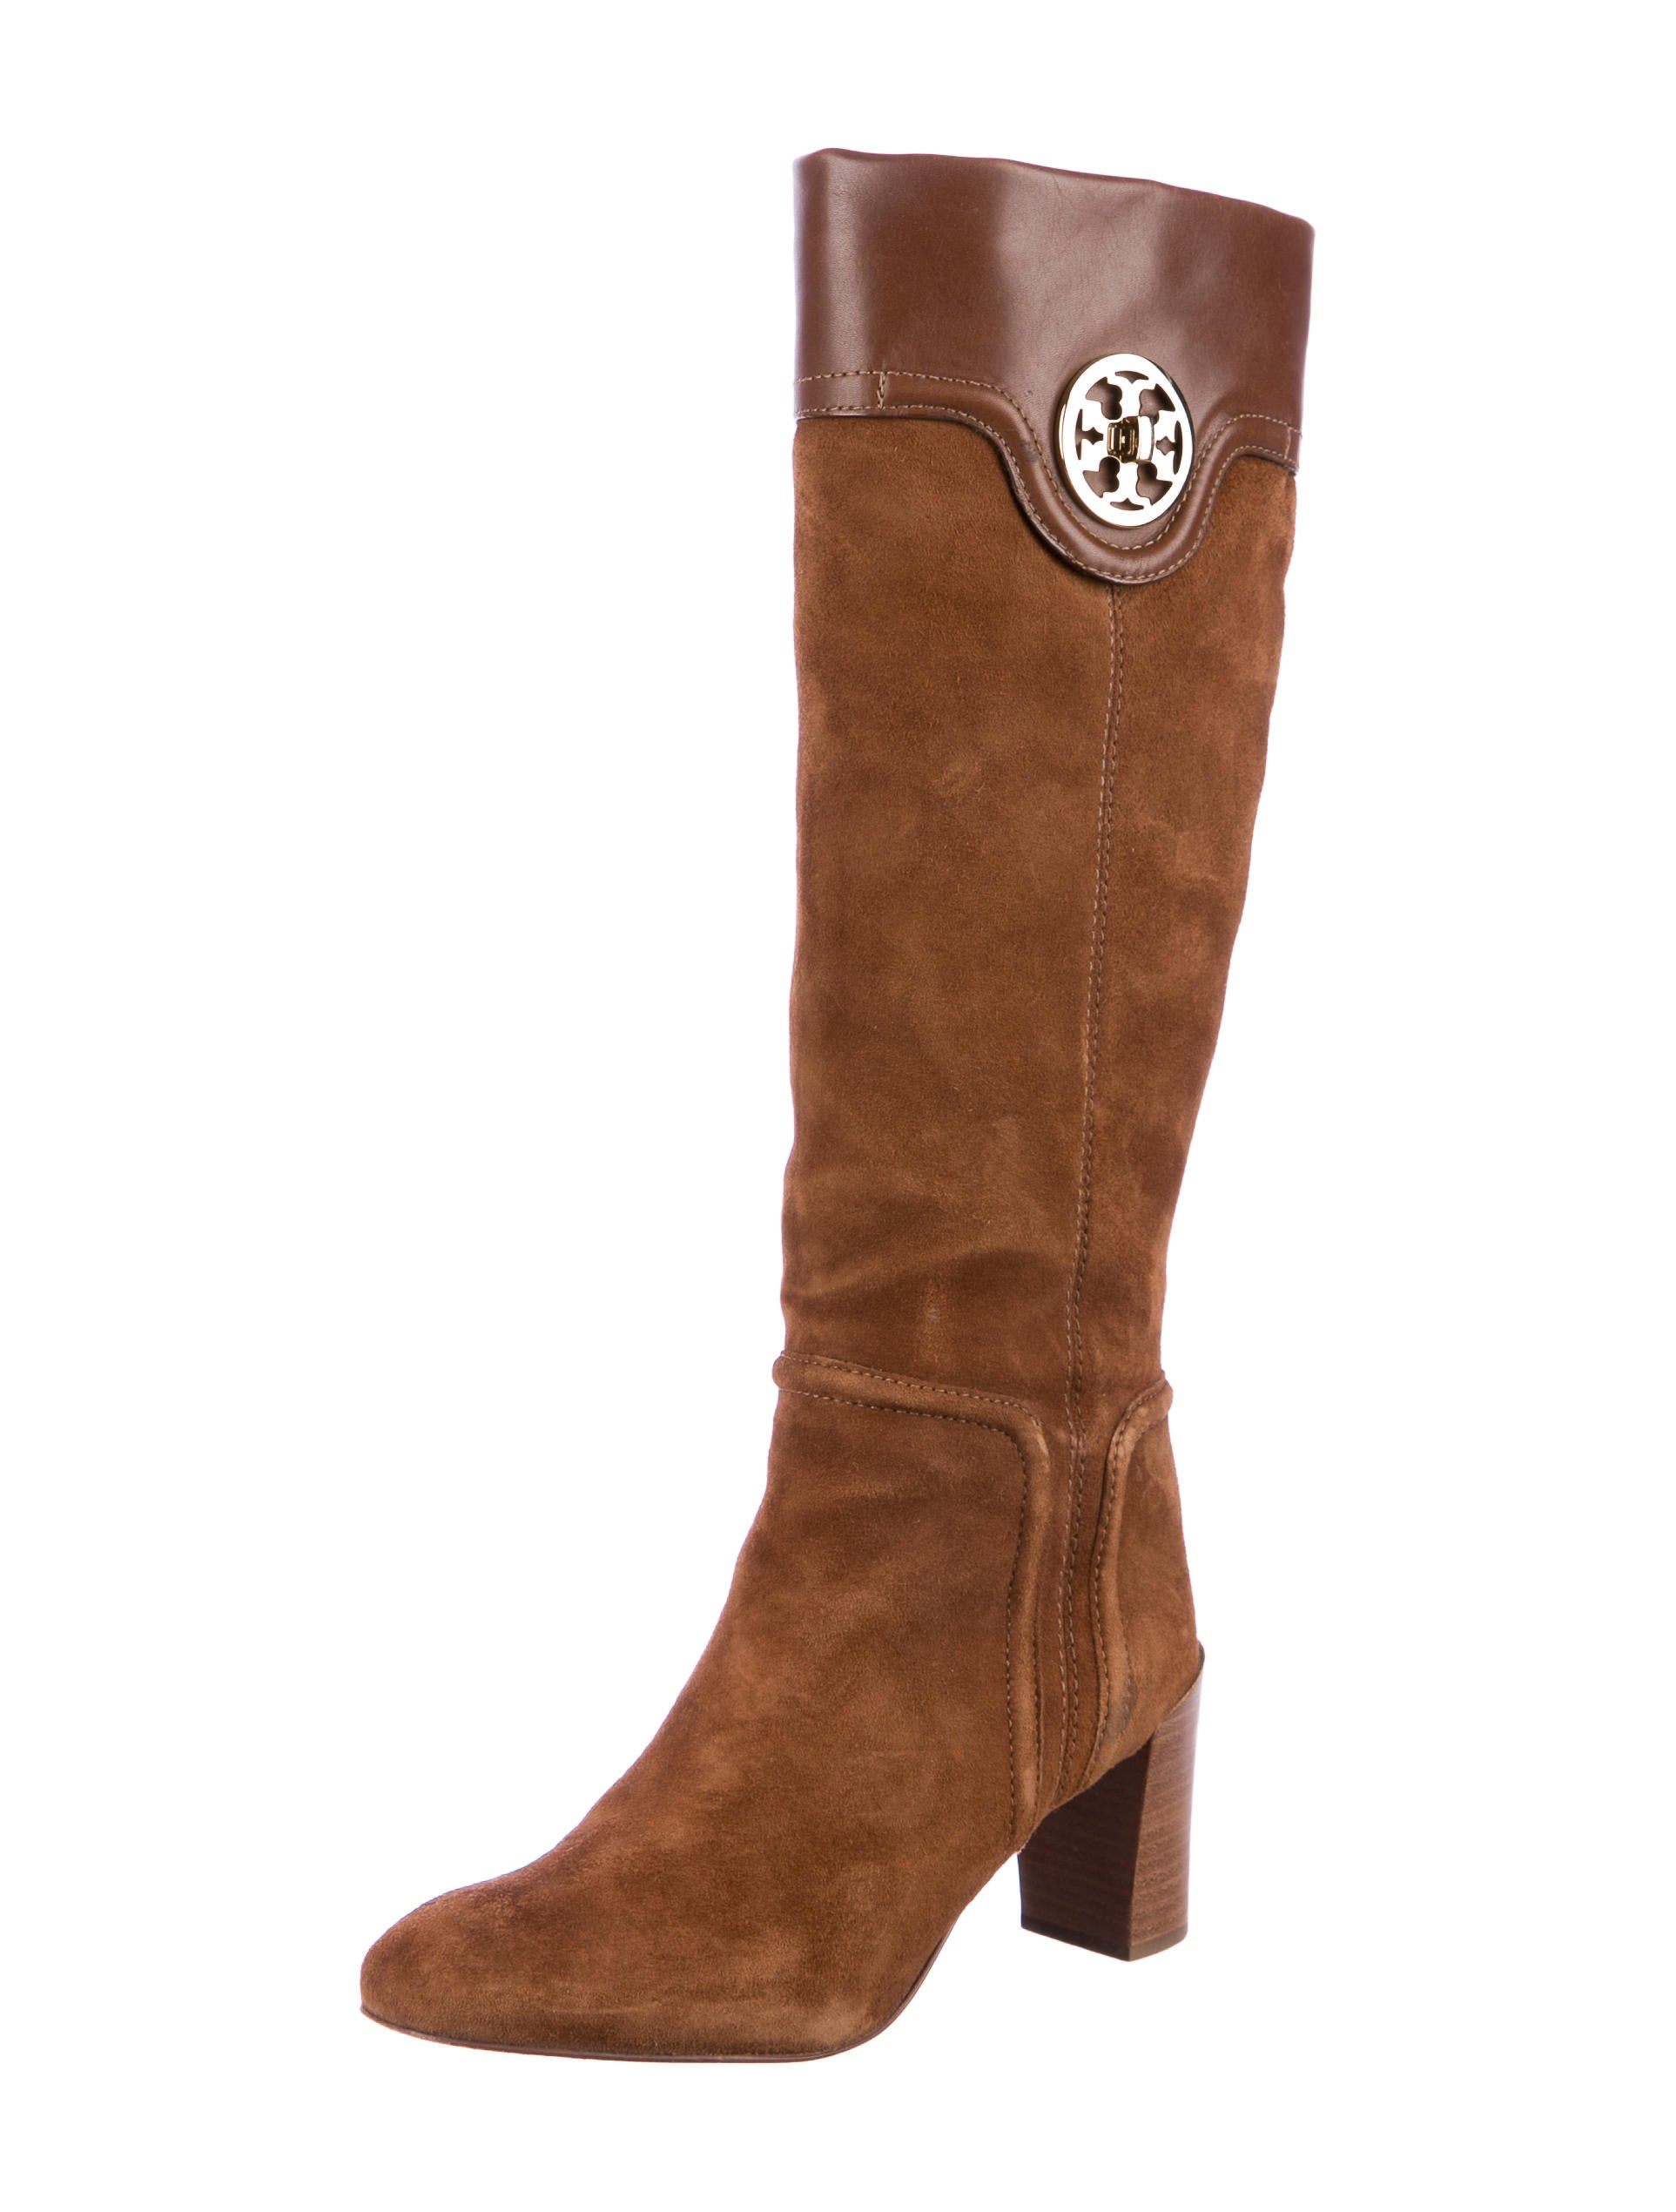 burch suede knee high boots shoes wto112392 the